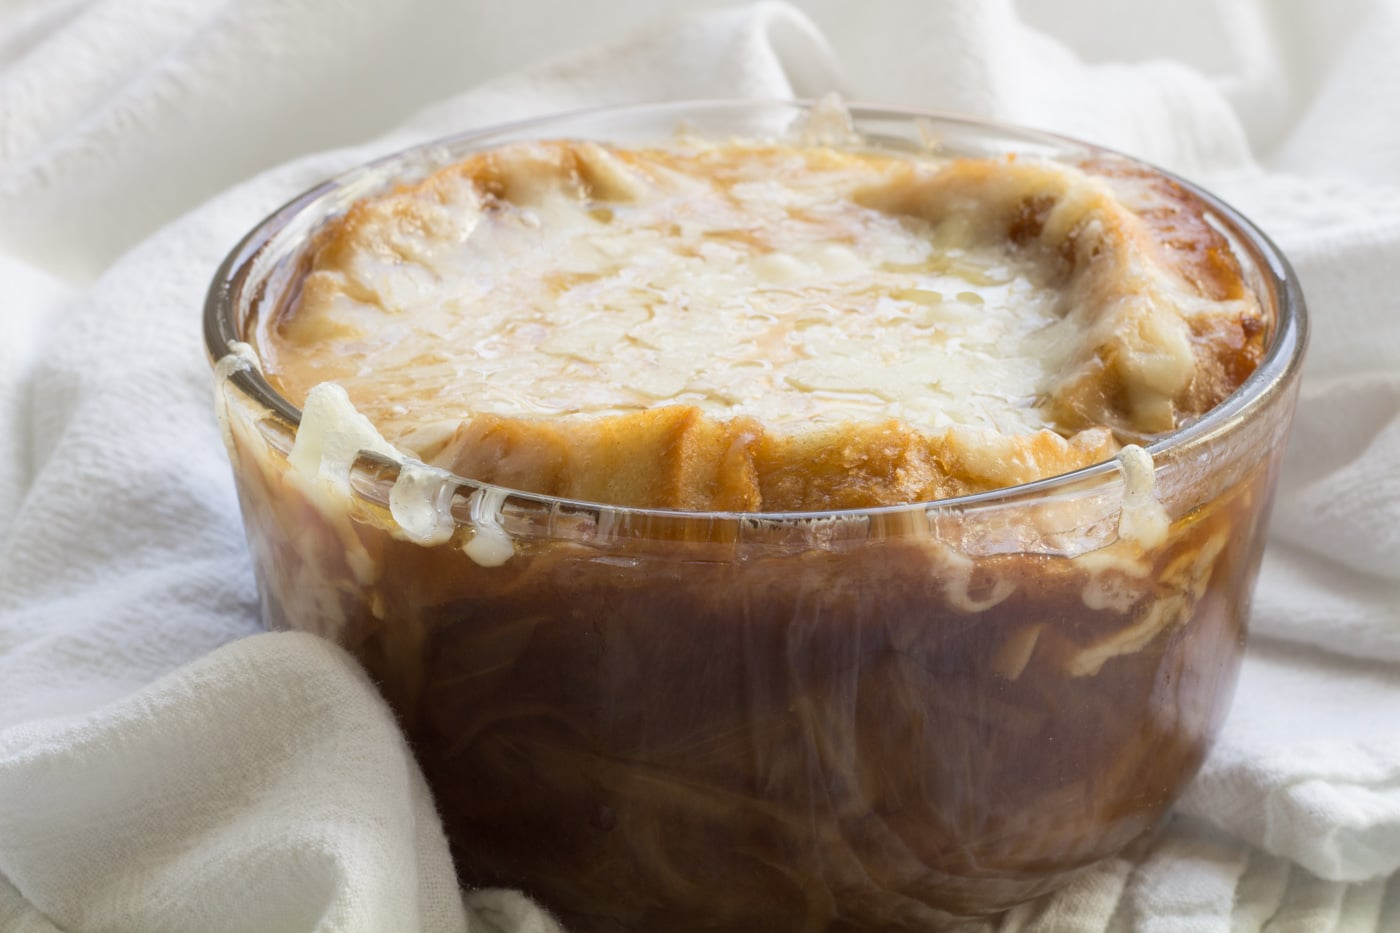 French Onion Soup in a glass bowl on a white tea towel